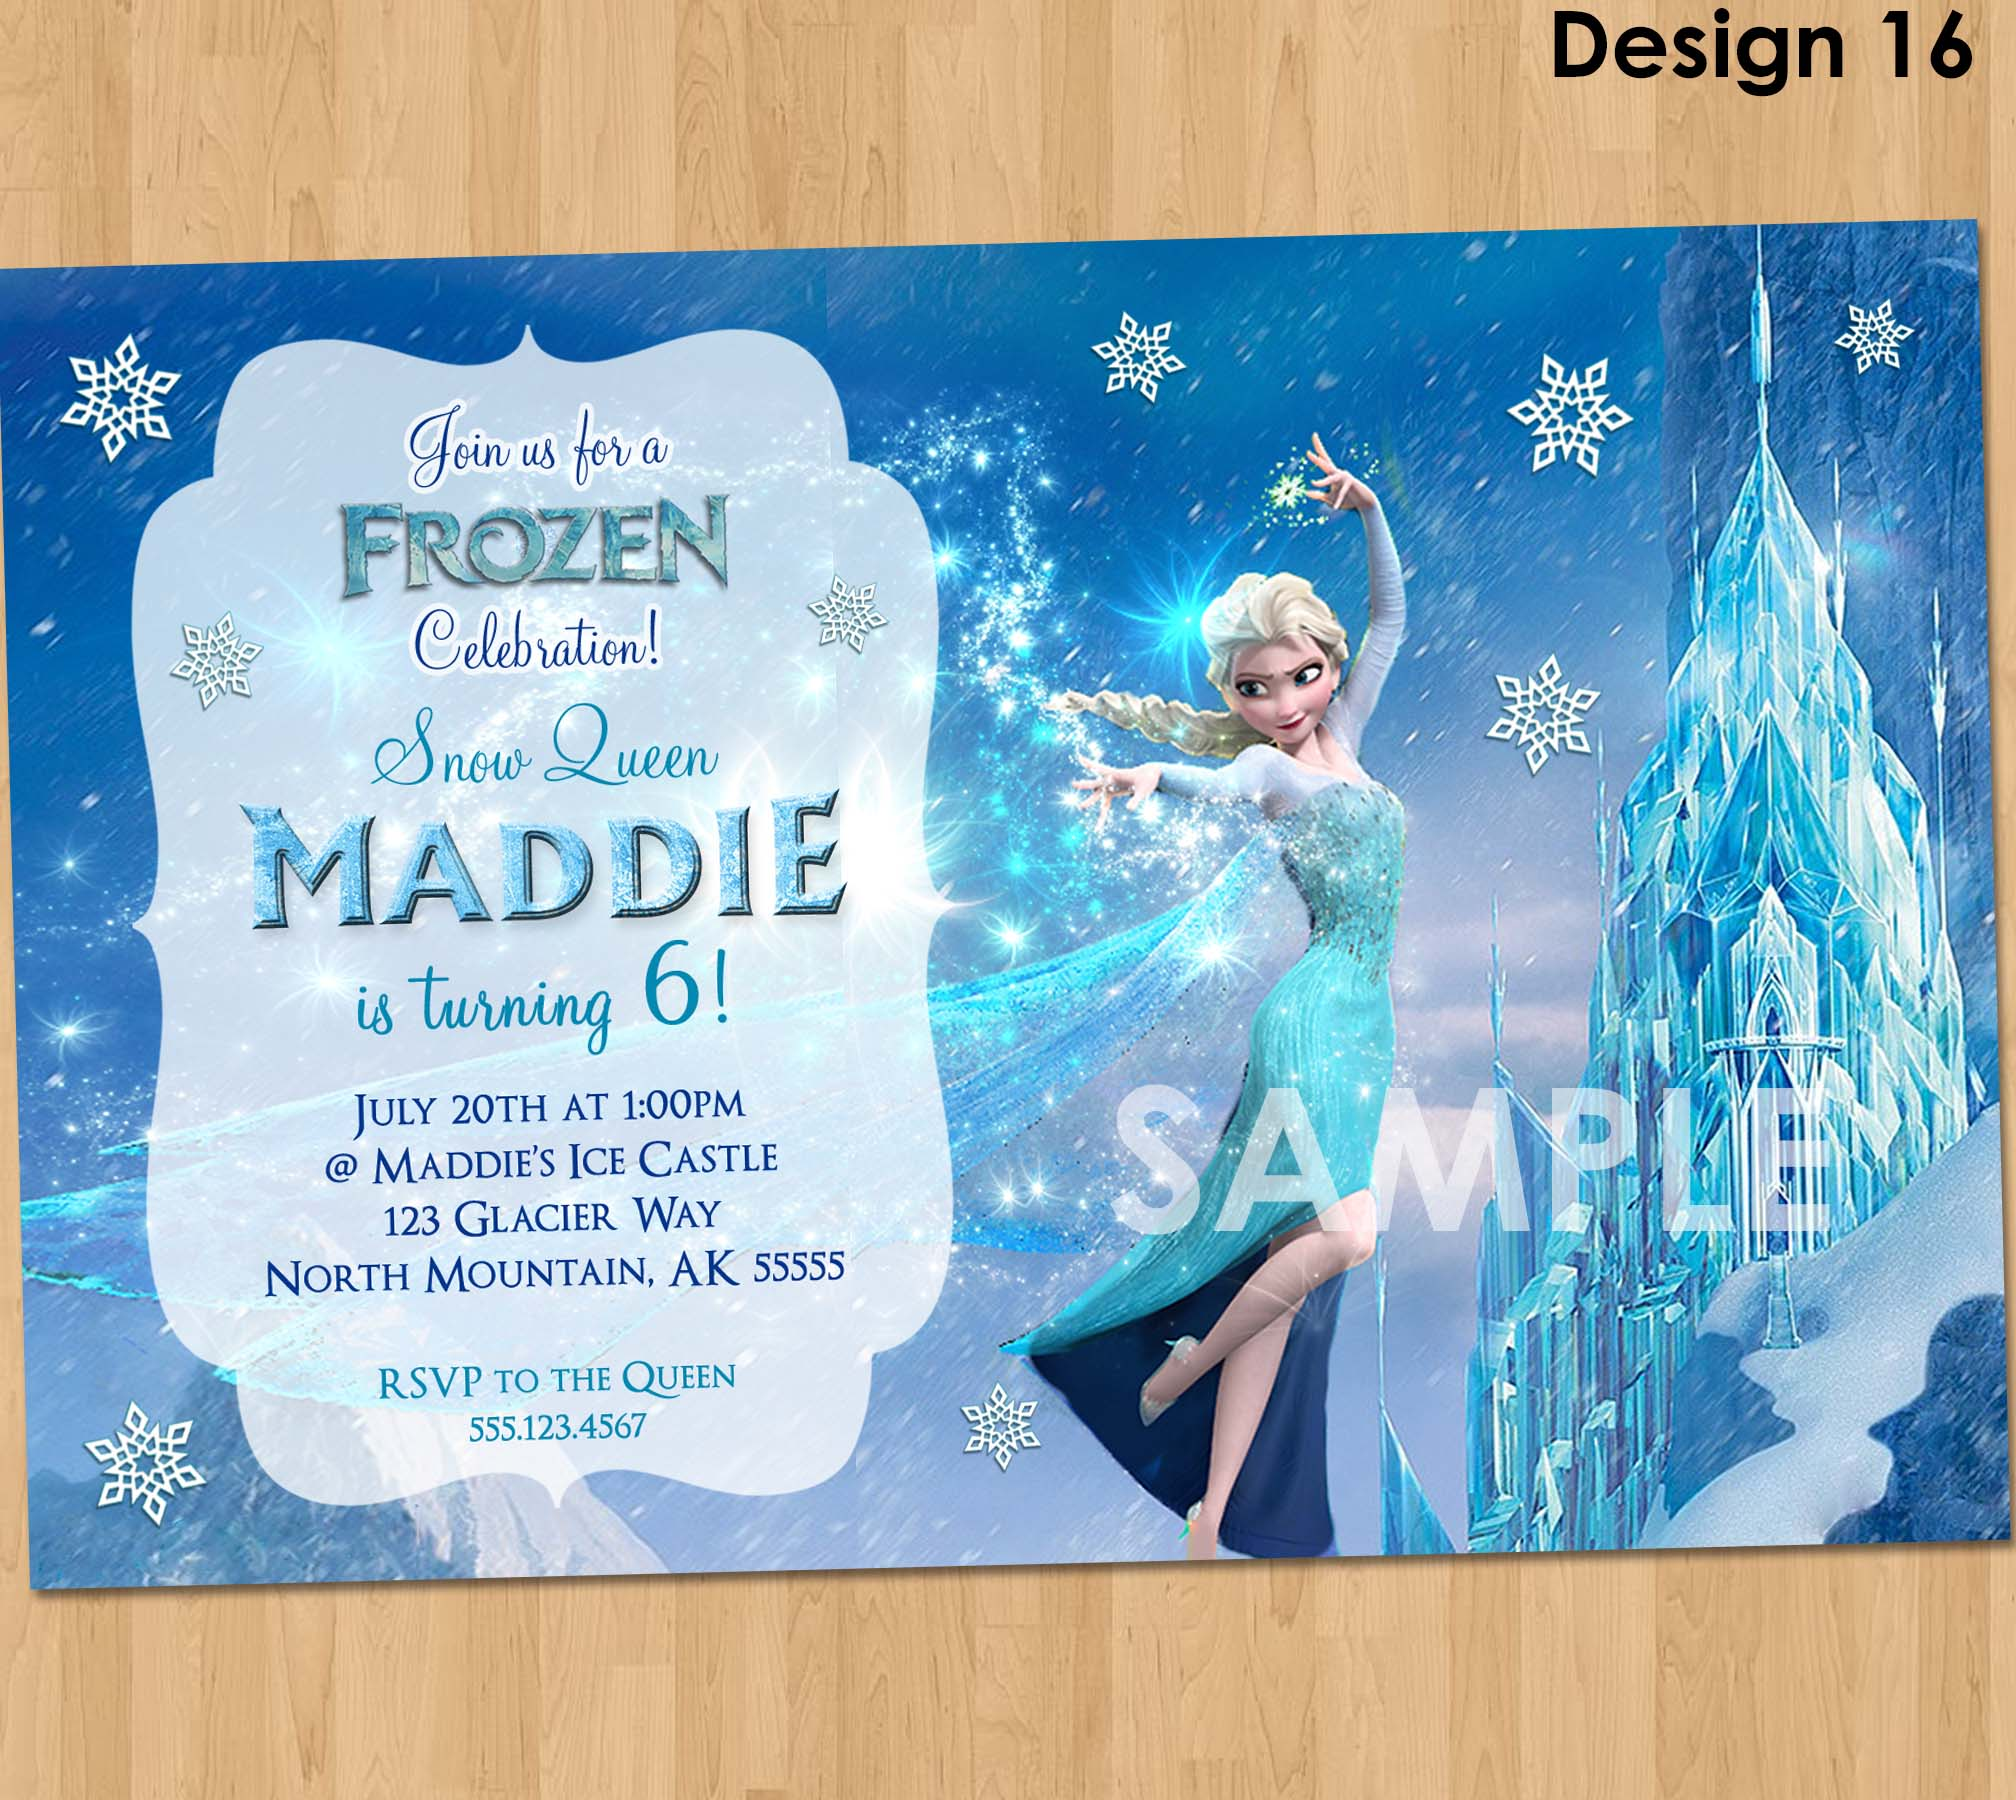 photograph regarding Frozen Birthday Card Printable referred to as Elsa Frozen Invitation - Frozen Birthday Invitation - Disney Frozen Birthday Invitation - Frozen Social gathering Guidelines Printable Elsa Snow Queen